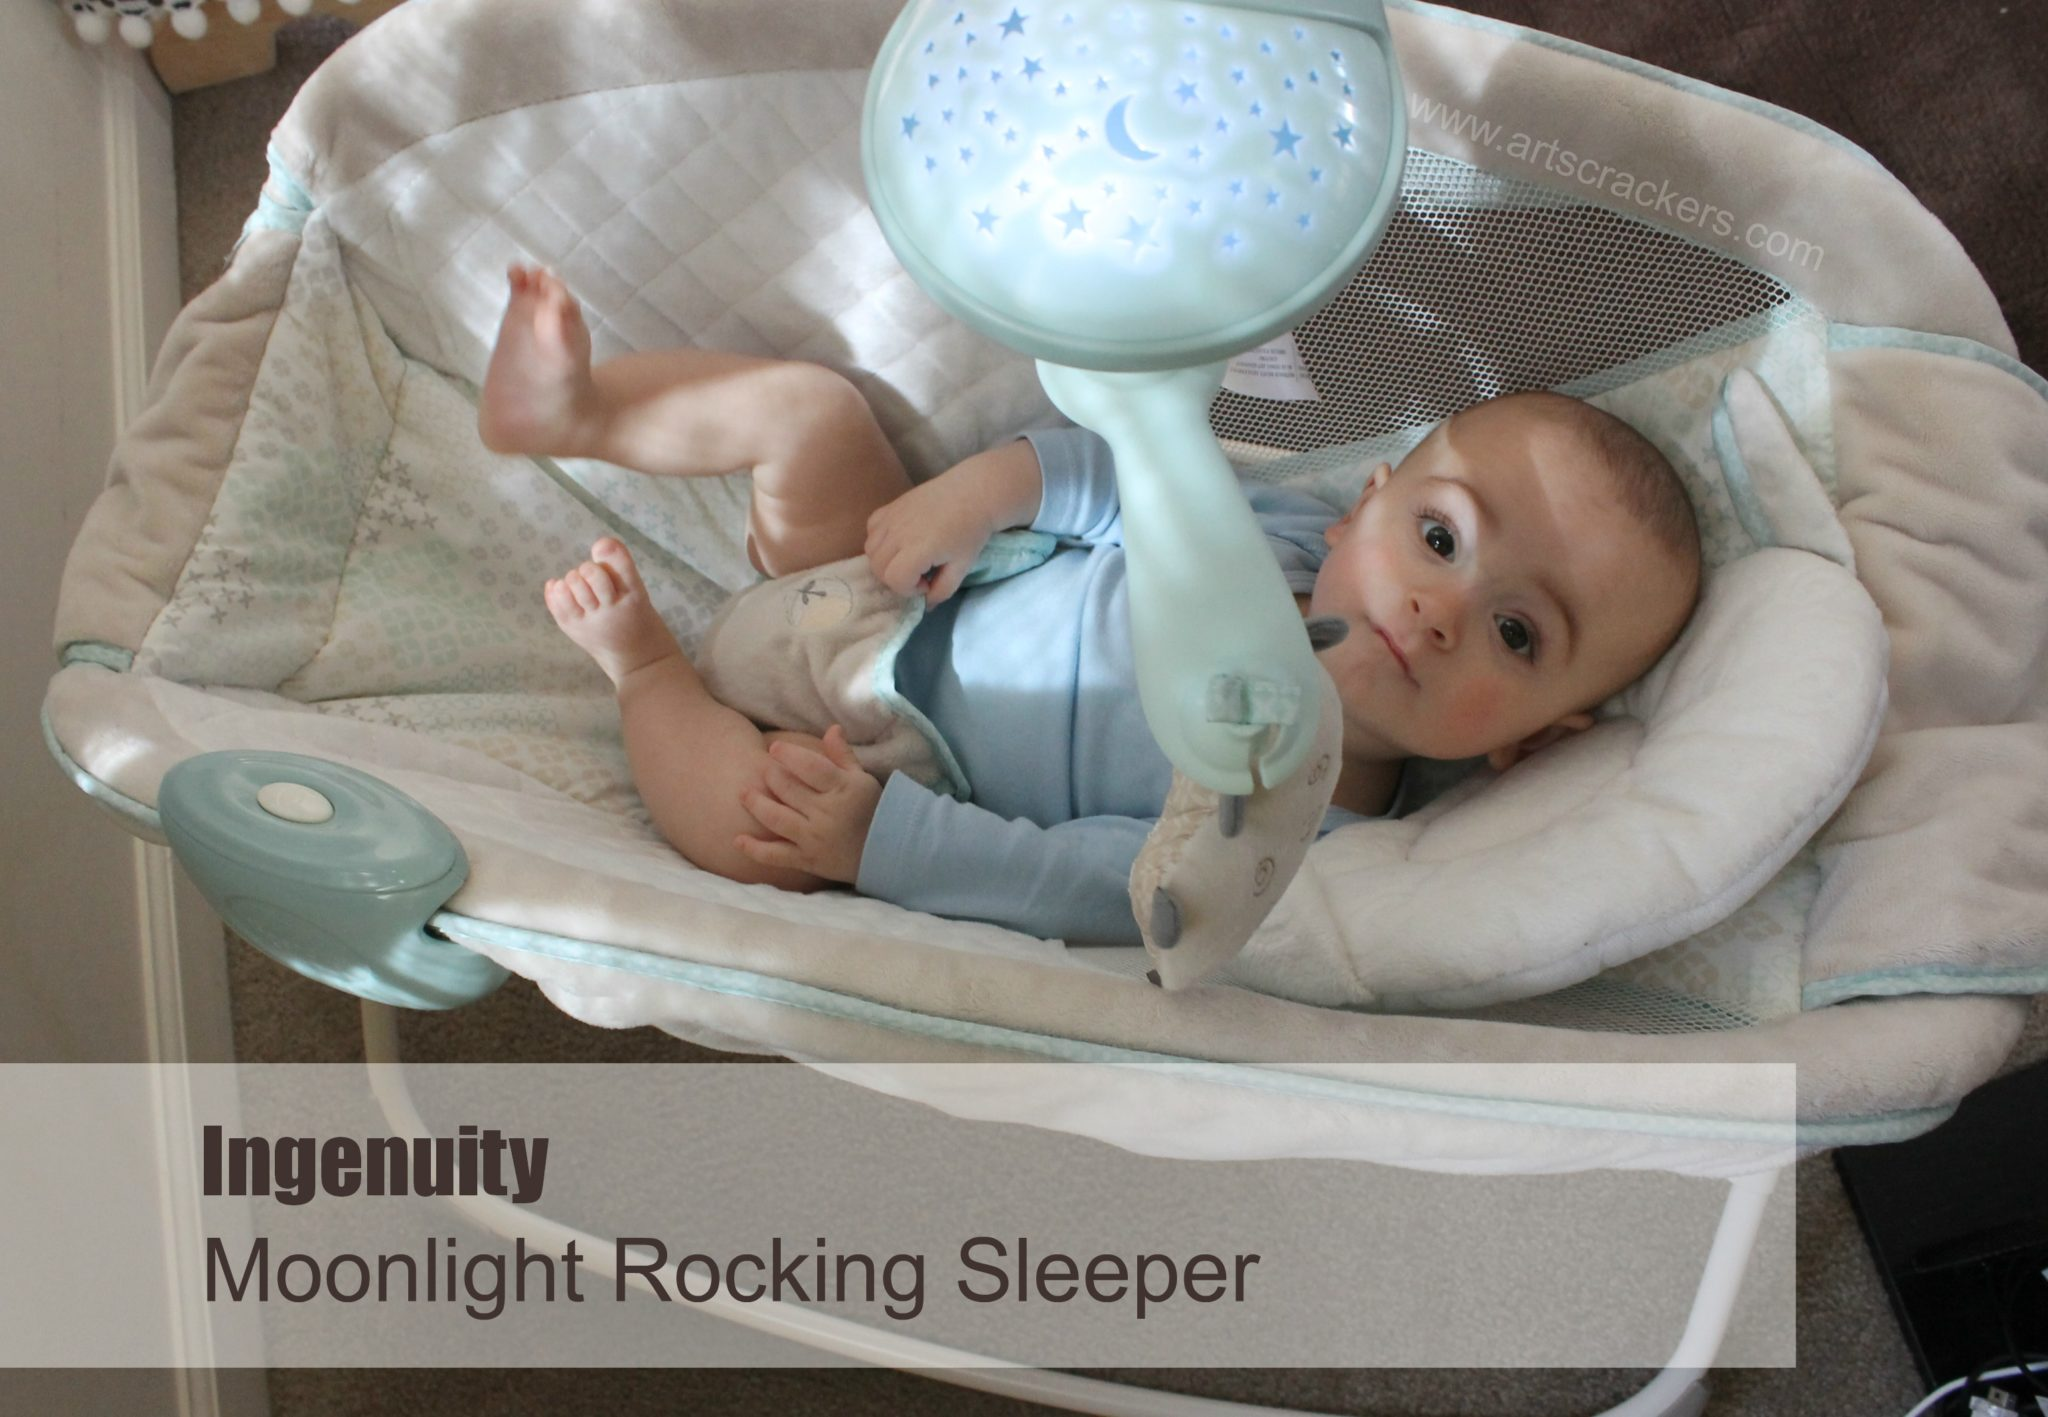 ingenuity moonlight rocking sleeper